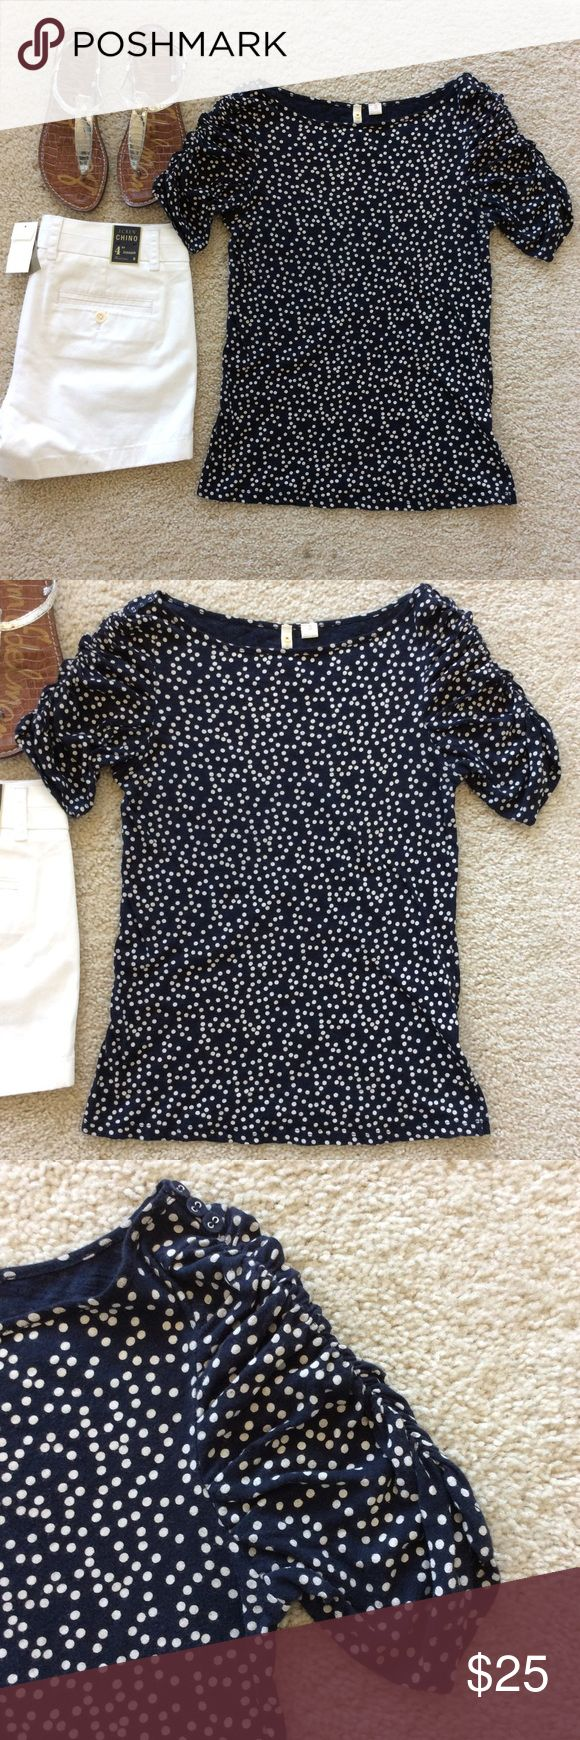 """{Anthropologie} Little Yellow Button Polka Dot top {Anthropologie} Little Yellow Button Polka Dot top. Super cute navy with white dots. Sleeves are ruched with little buttons on the shoulders. Laying flat approx 22.5"""" shoulder to hem, approx 15.5"""" pit to pit. 100% cotton. Size S. Great condition except for some wash and wear. No holes, stains, snags. #889 Anthropologie Tops Tees - Short Sleeve"""